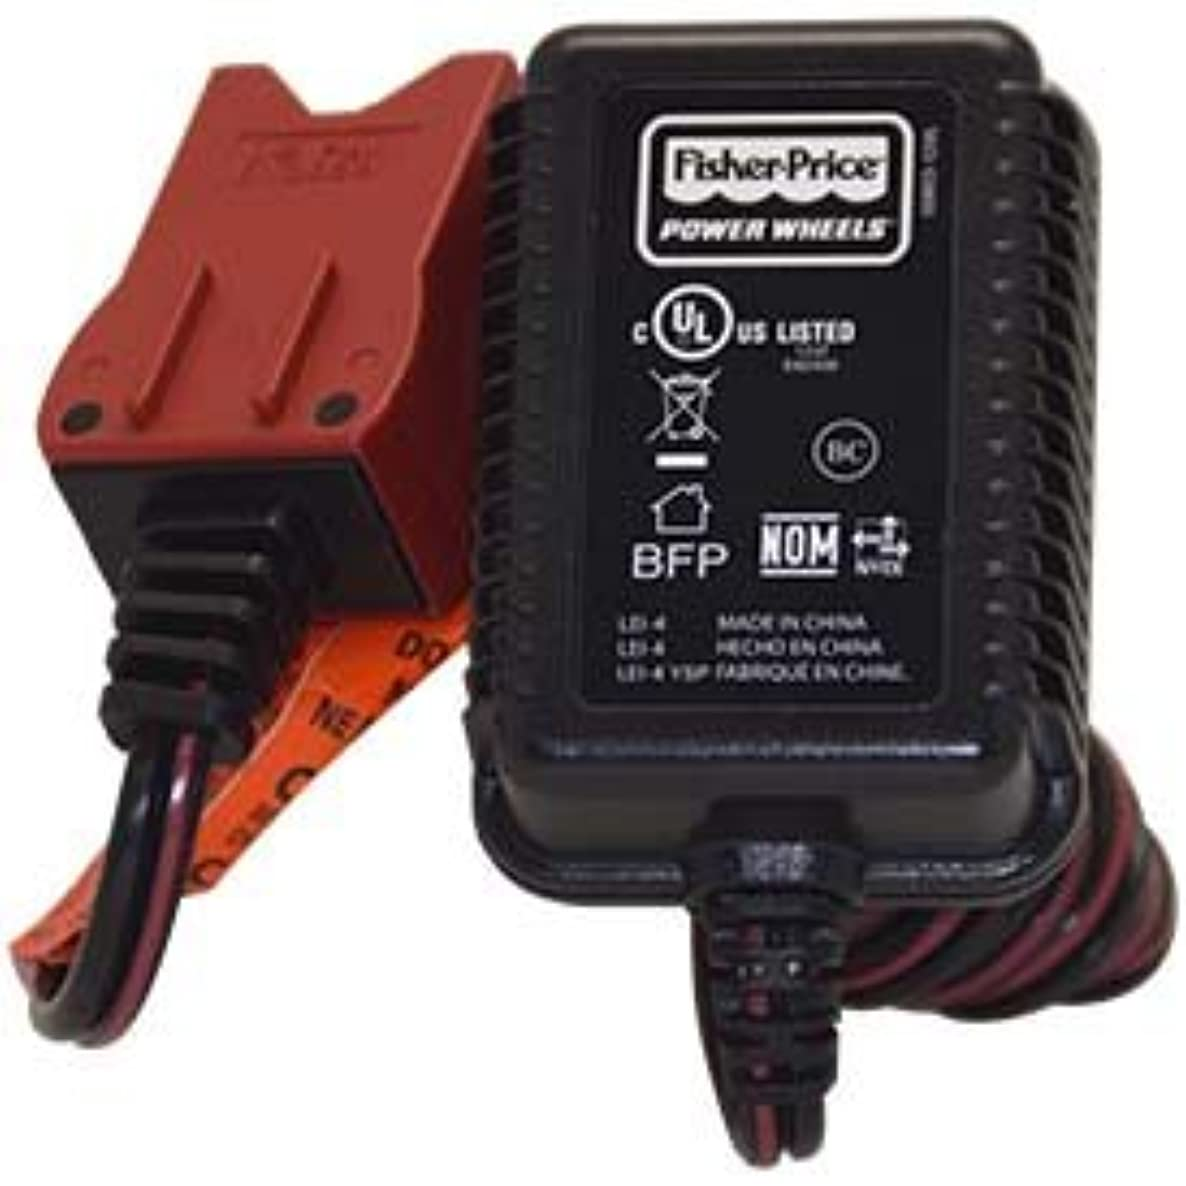 Replacement For FISHER PRICE 76229 POWER WHEELS RAPID BATTERY CHARGER Battery